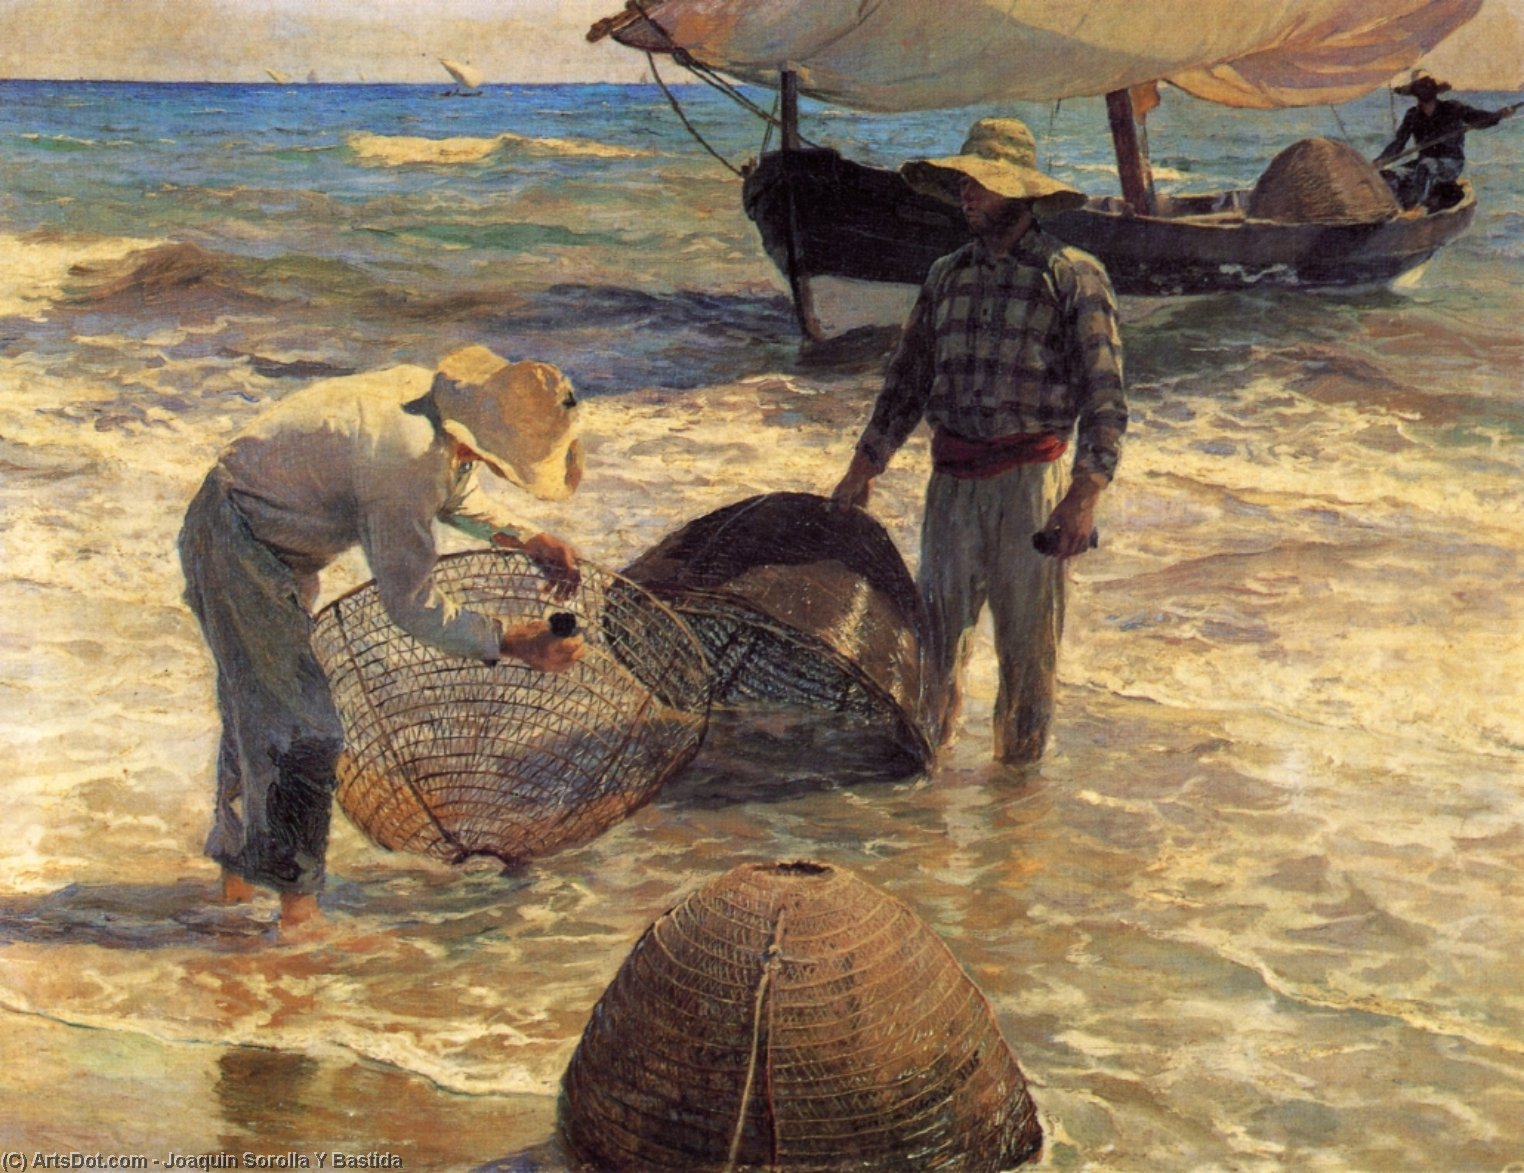 Valencian Fishermen, Oil On Canvas by Joaquin Sorolla Y Bastida (1863-1923, Spain)